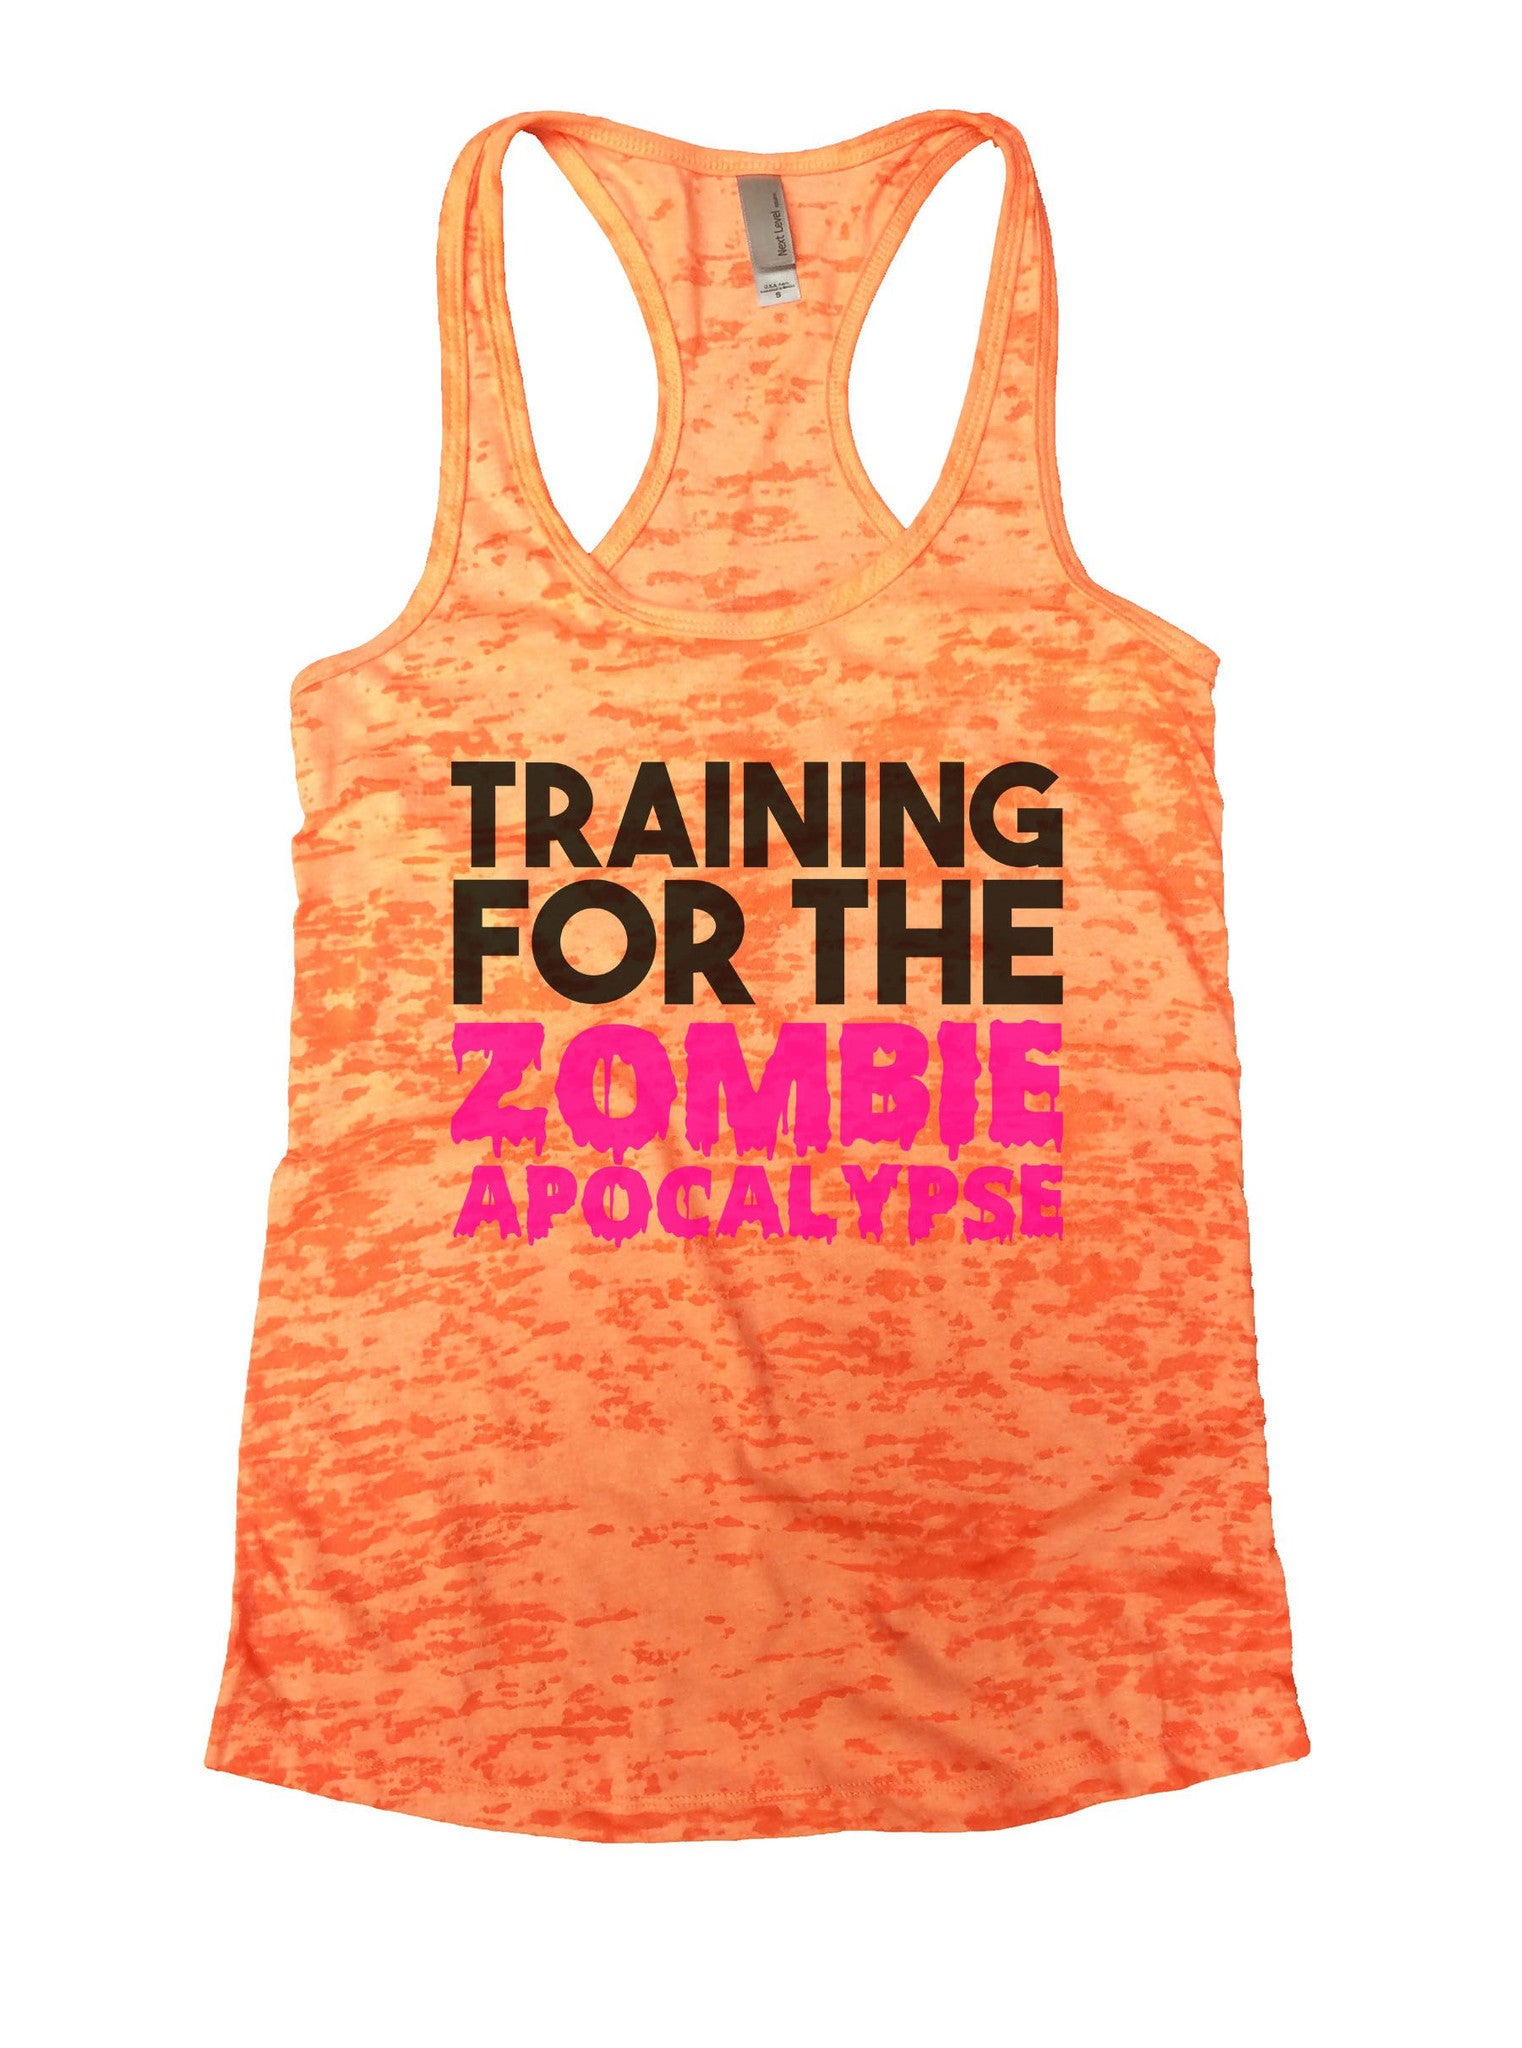 Training For The Zombie Apocalypse Burnout Tank Top By BurnoutTankTops.com - 873 - Funny Shirts Tank Tops Burnouts and Triblends  - 7